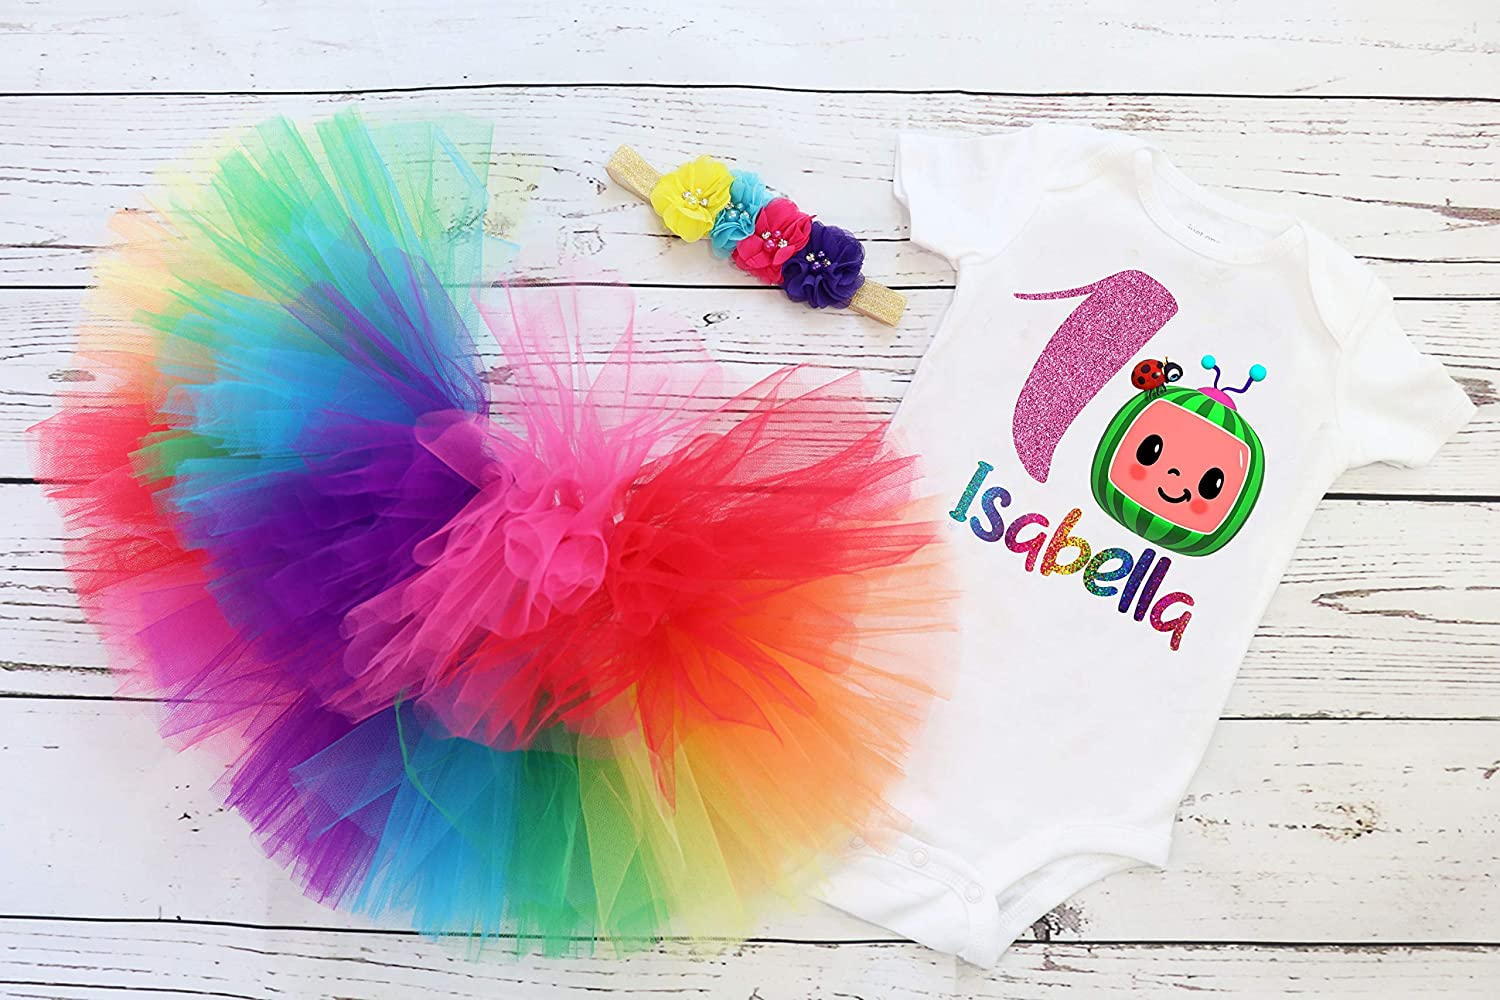 Coco Melon Tutu 7th Birthday Dress Name Personalized Outfit Custom Family Matching Shirt Age Name Baby Girl 1st,2nd,3rd,4th,5th,6th,7th.